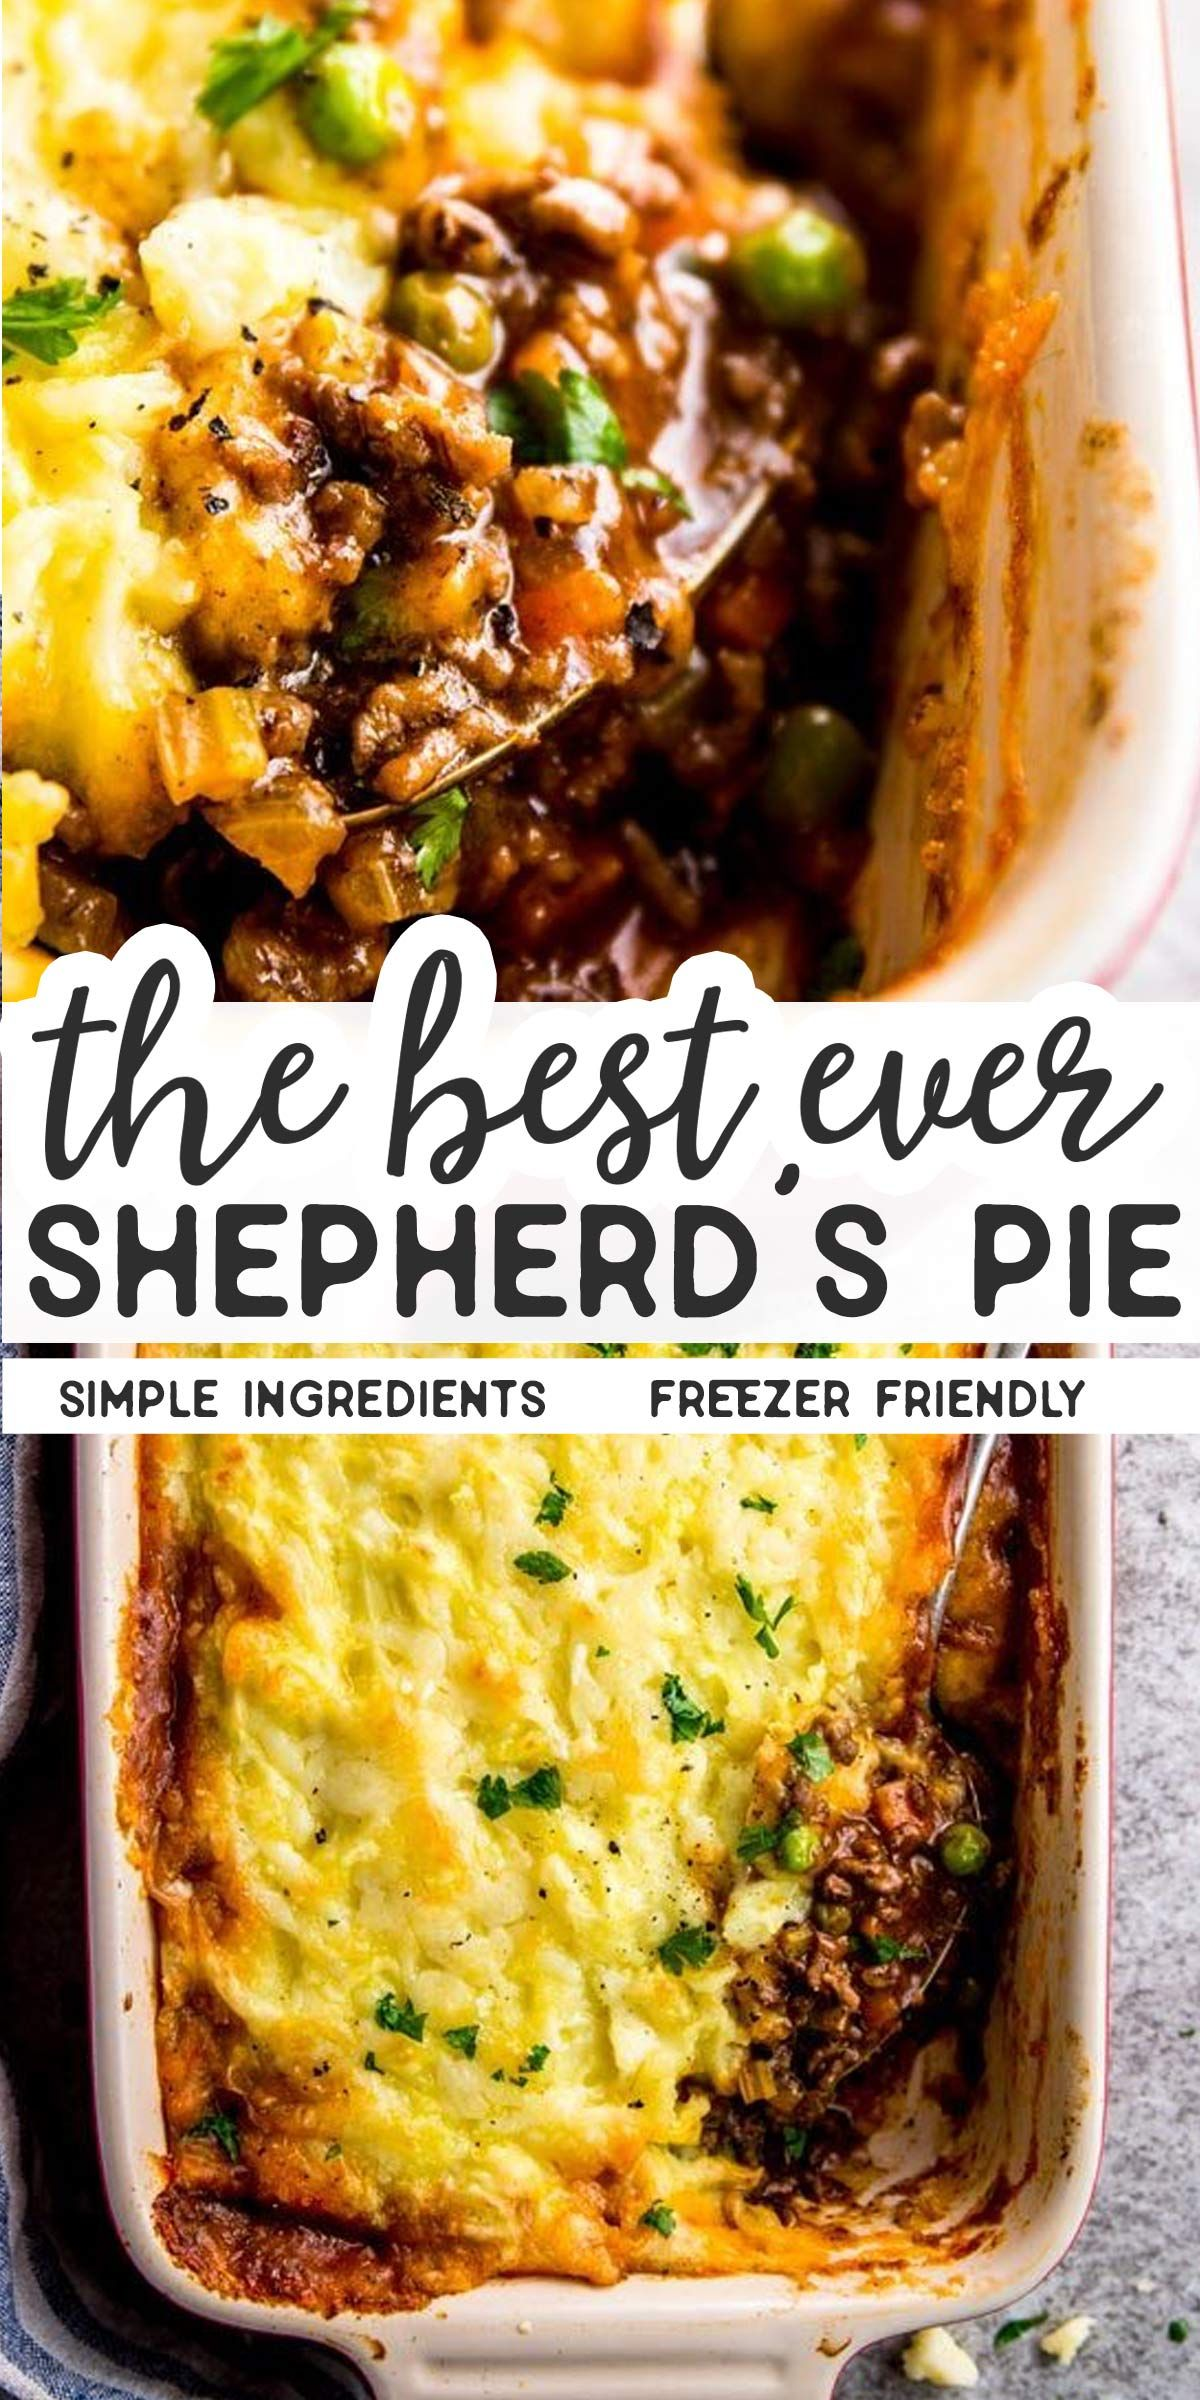 The Best Homemade Shepherds Pie Homemade shepherds pie is the ultimate comfort food This simple recipe is made completely from scratch like the traditional but uses groun...